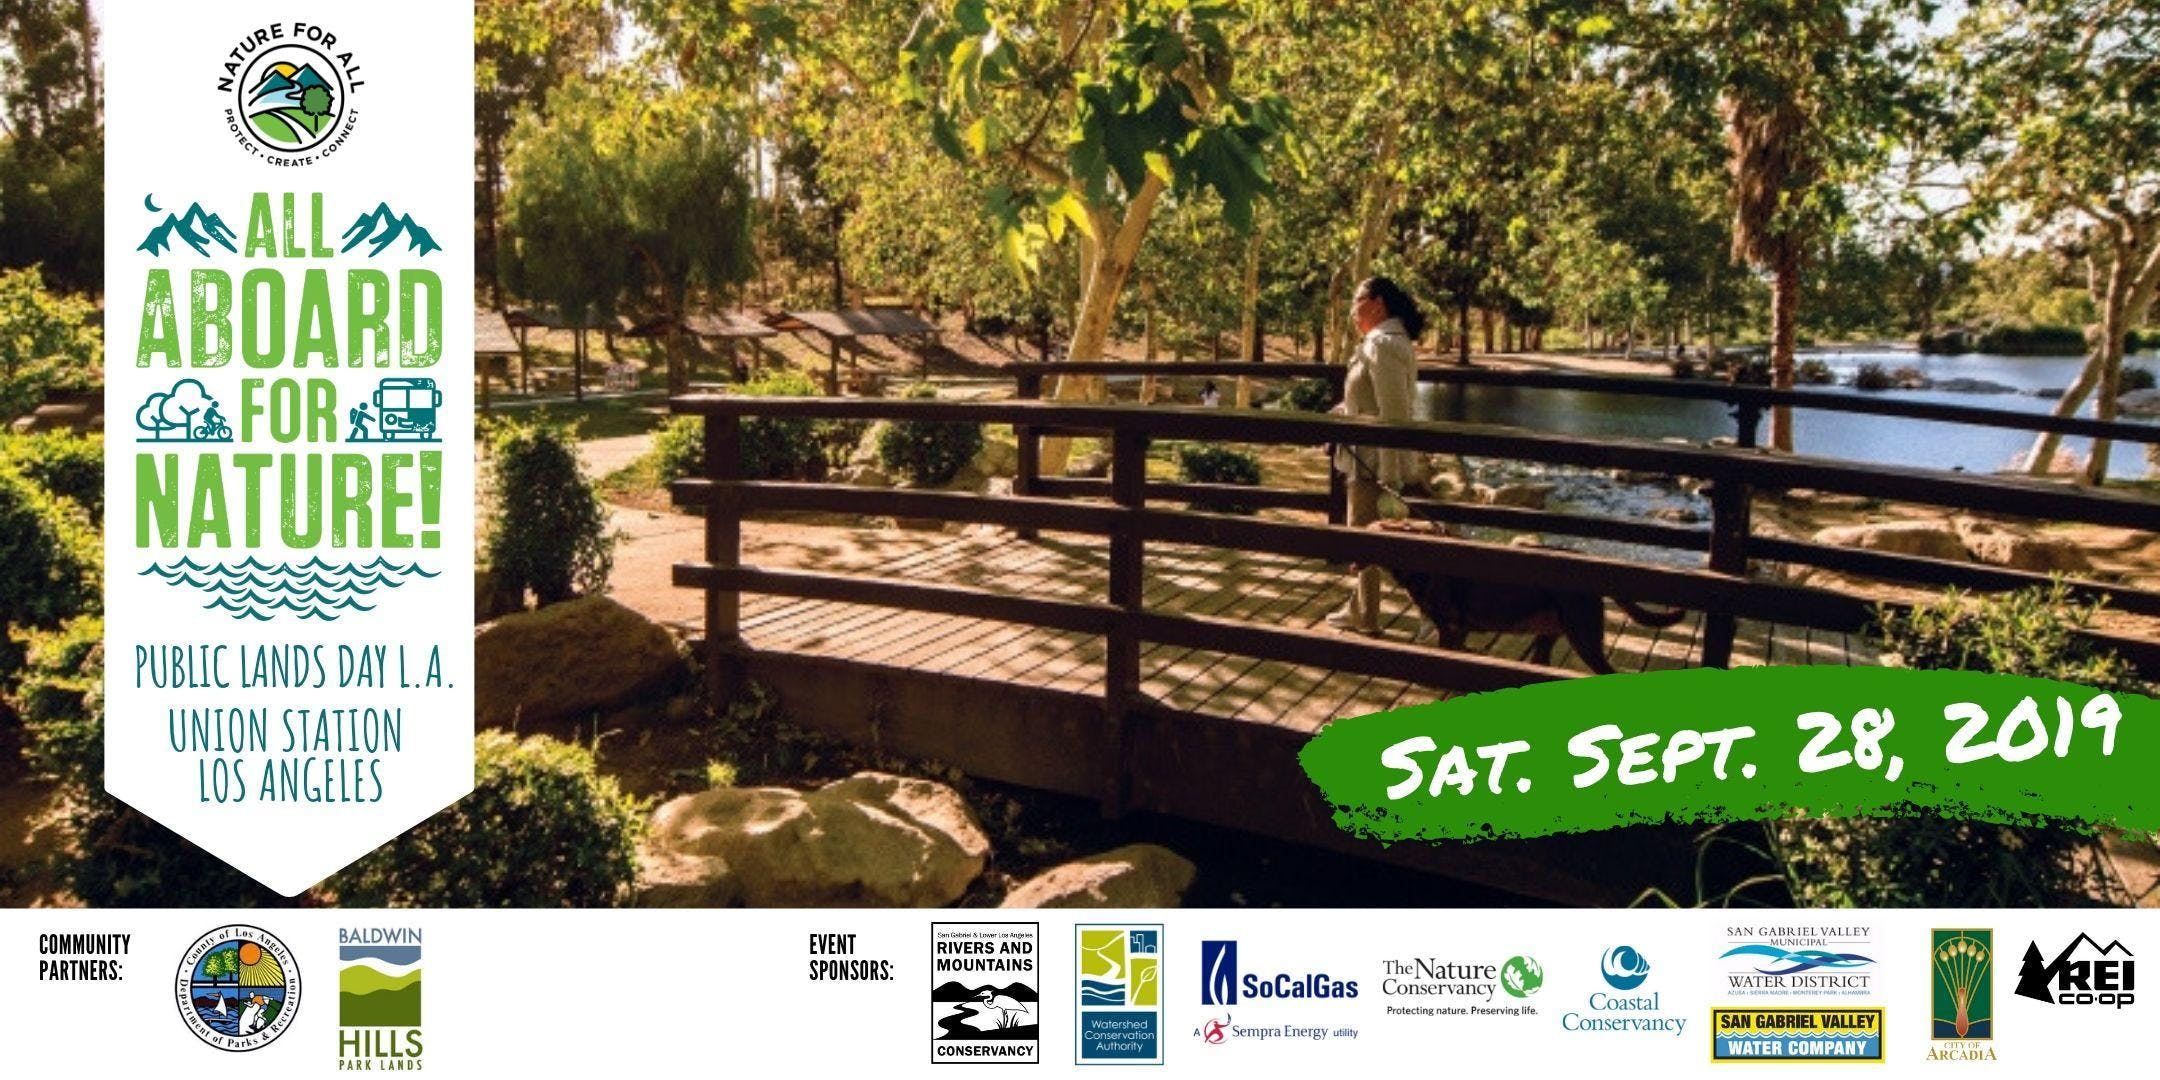 ALL ABOARD FOR NATURE! Trip #3: Kenneth Hahn State Recreation Area